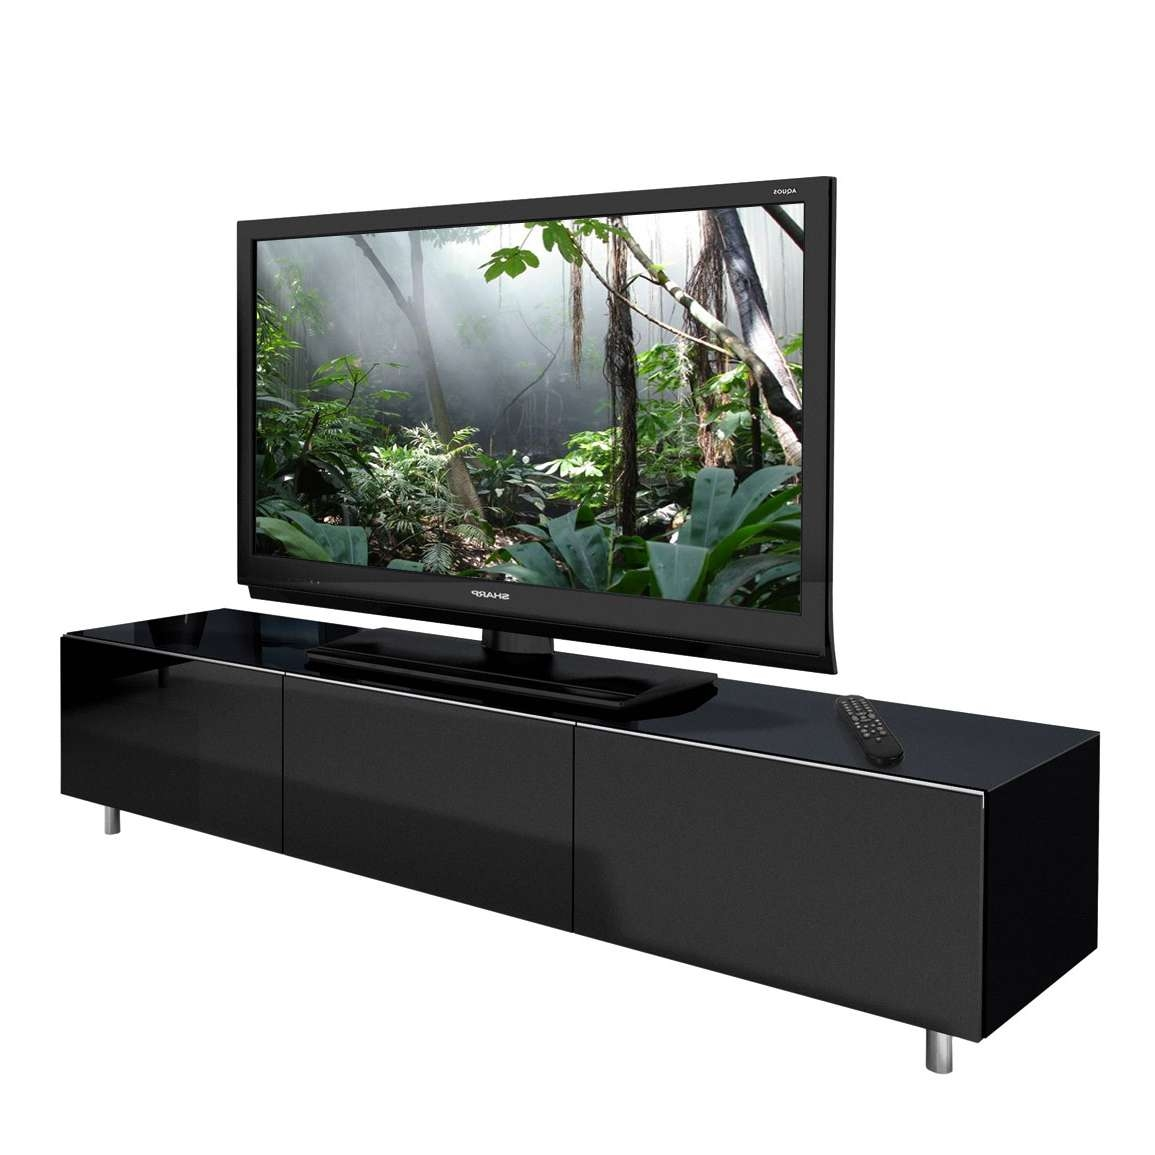 Just Racks Jrl1650 Gloss Black Tv Cabinet – Black Tv Stands Regarding Long Low Tv Cabinets (Gallery 20 of 20)